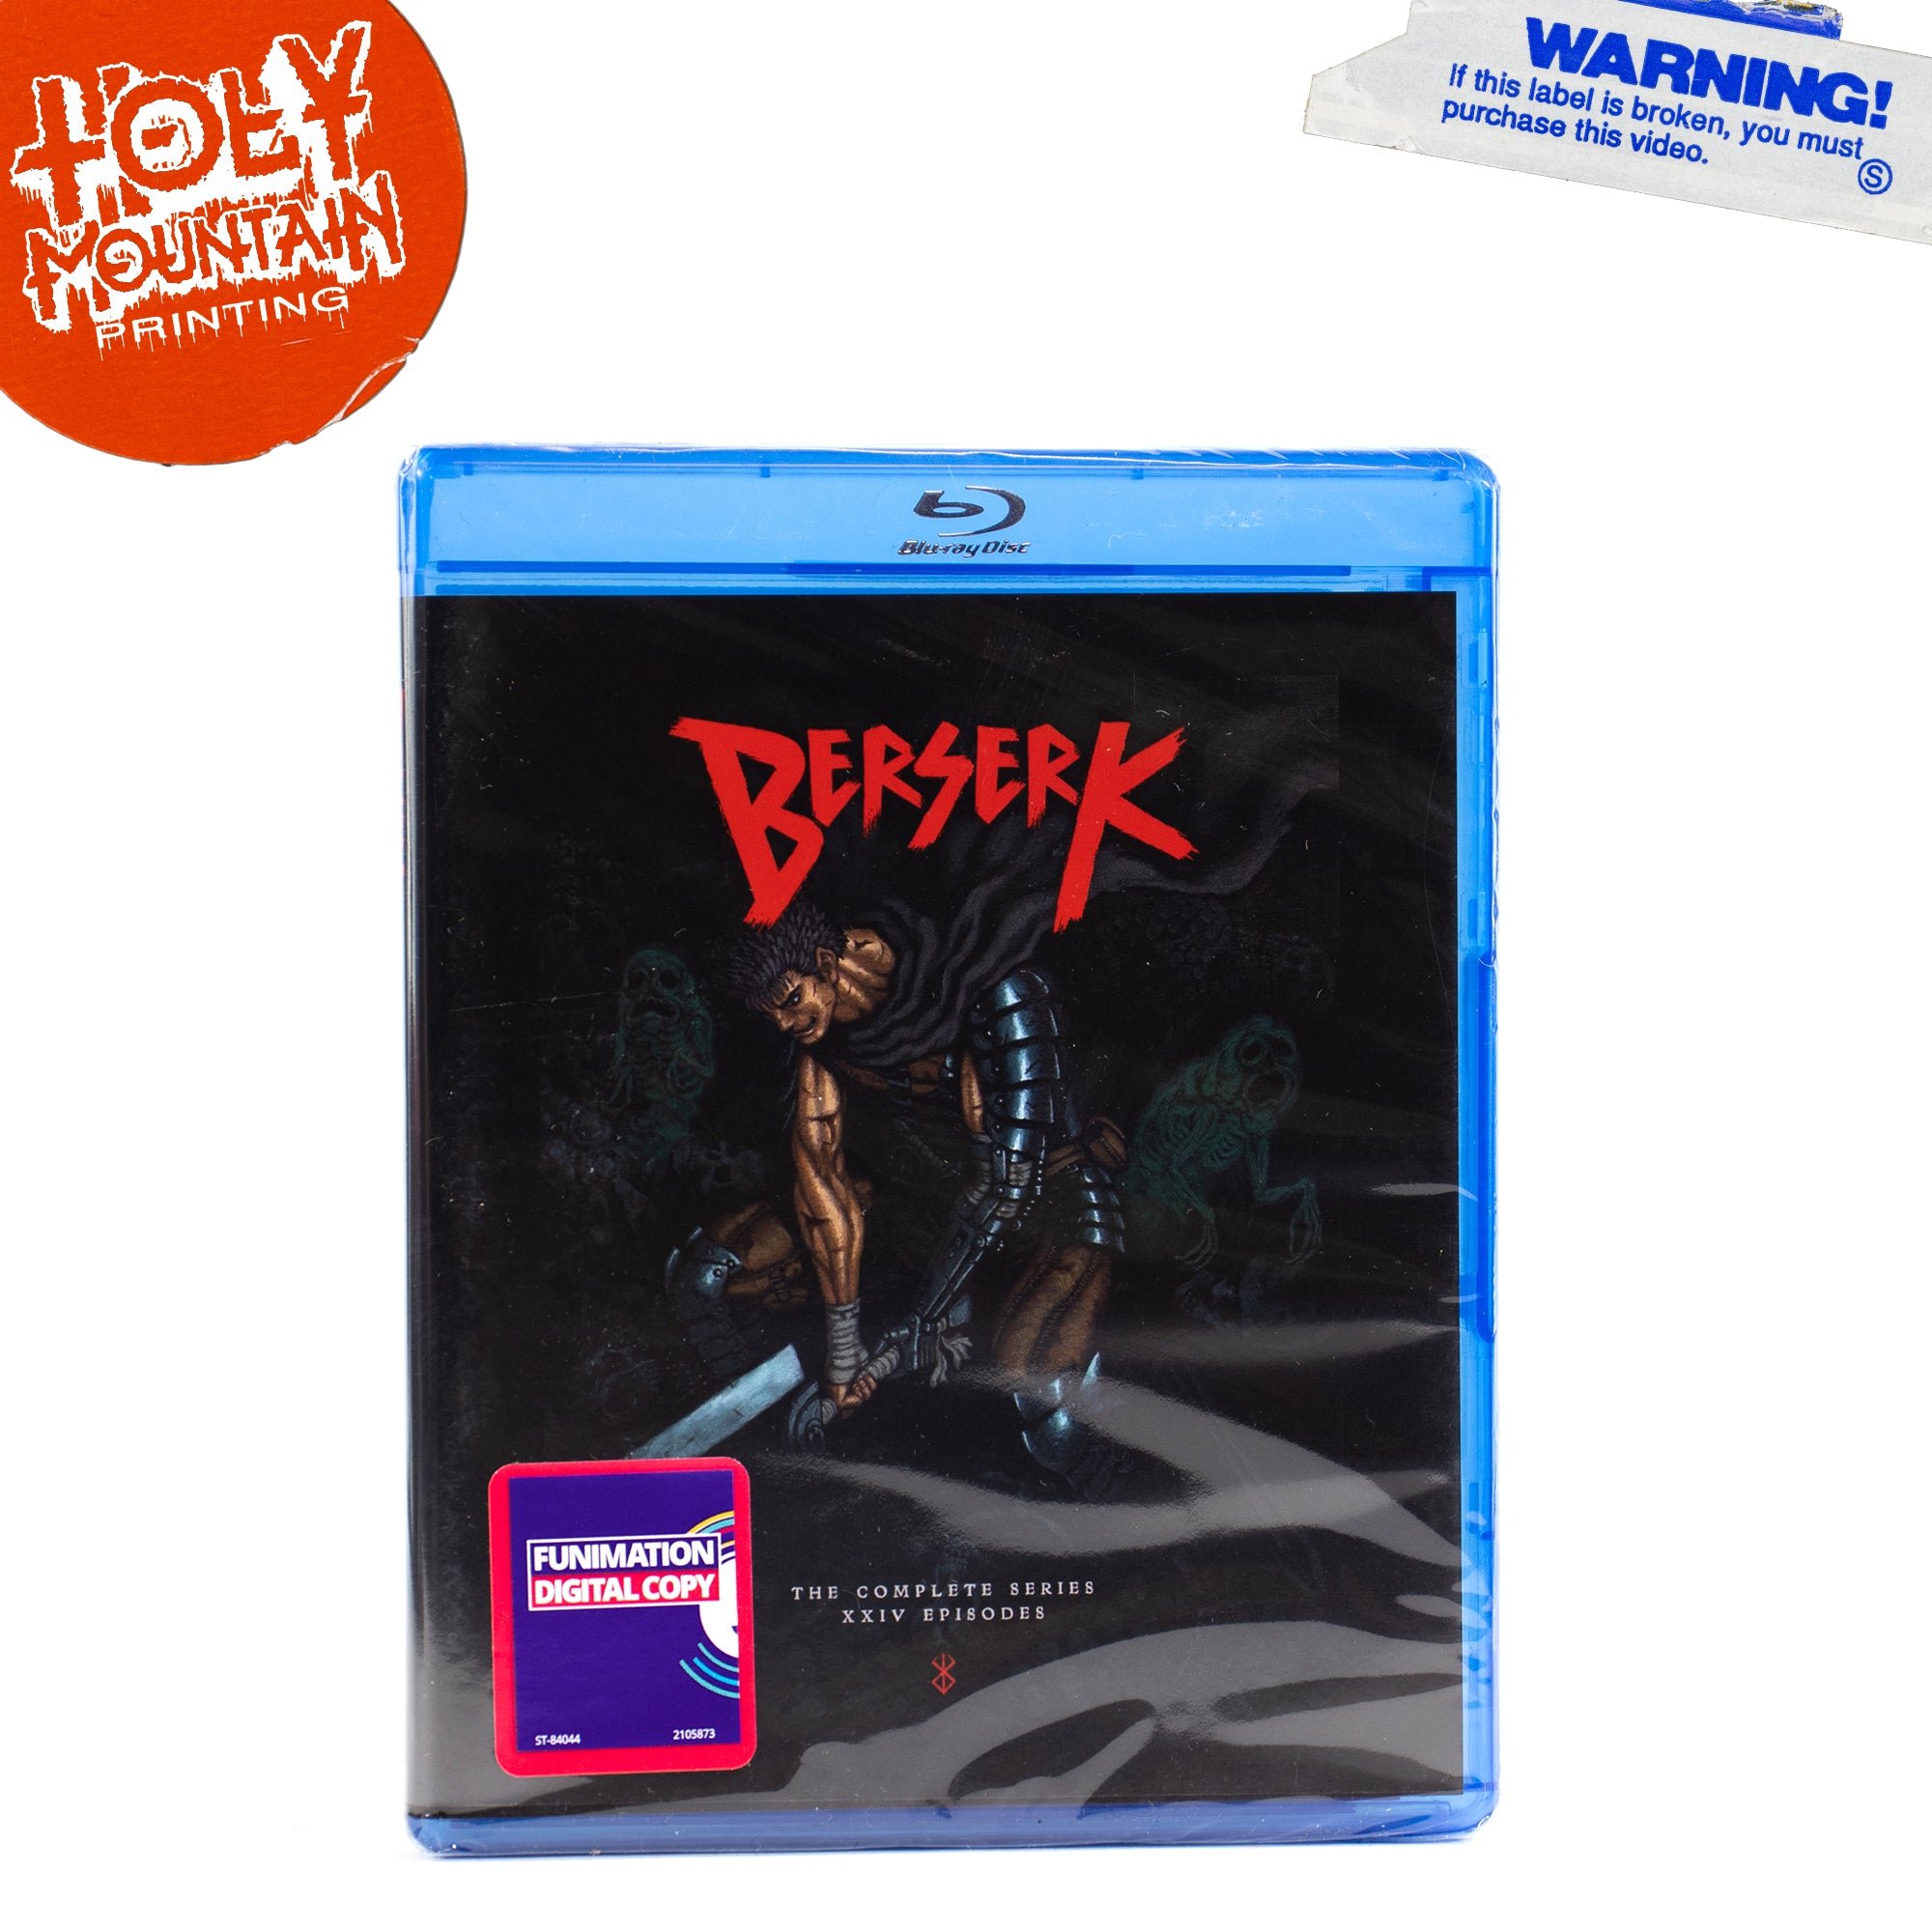 Berserk: The Complete Series - Blu-Ray